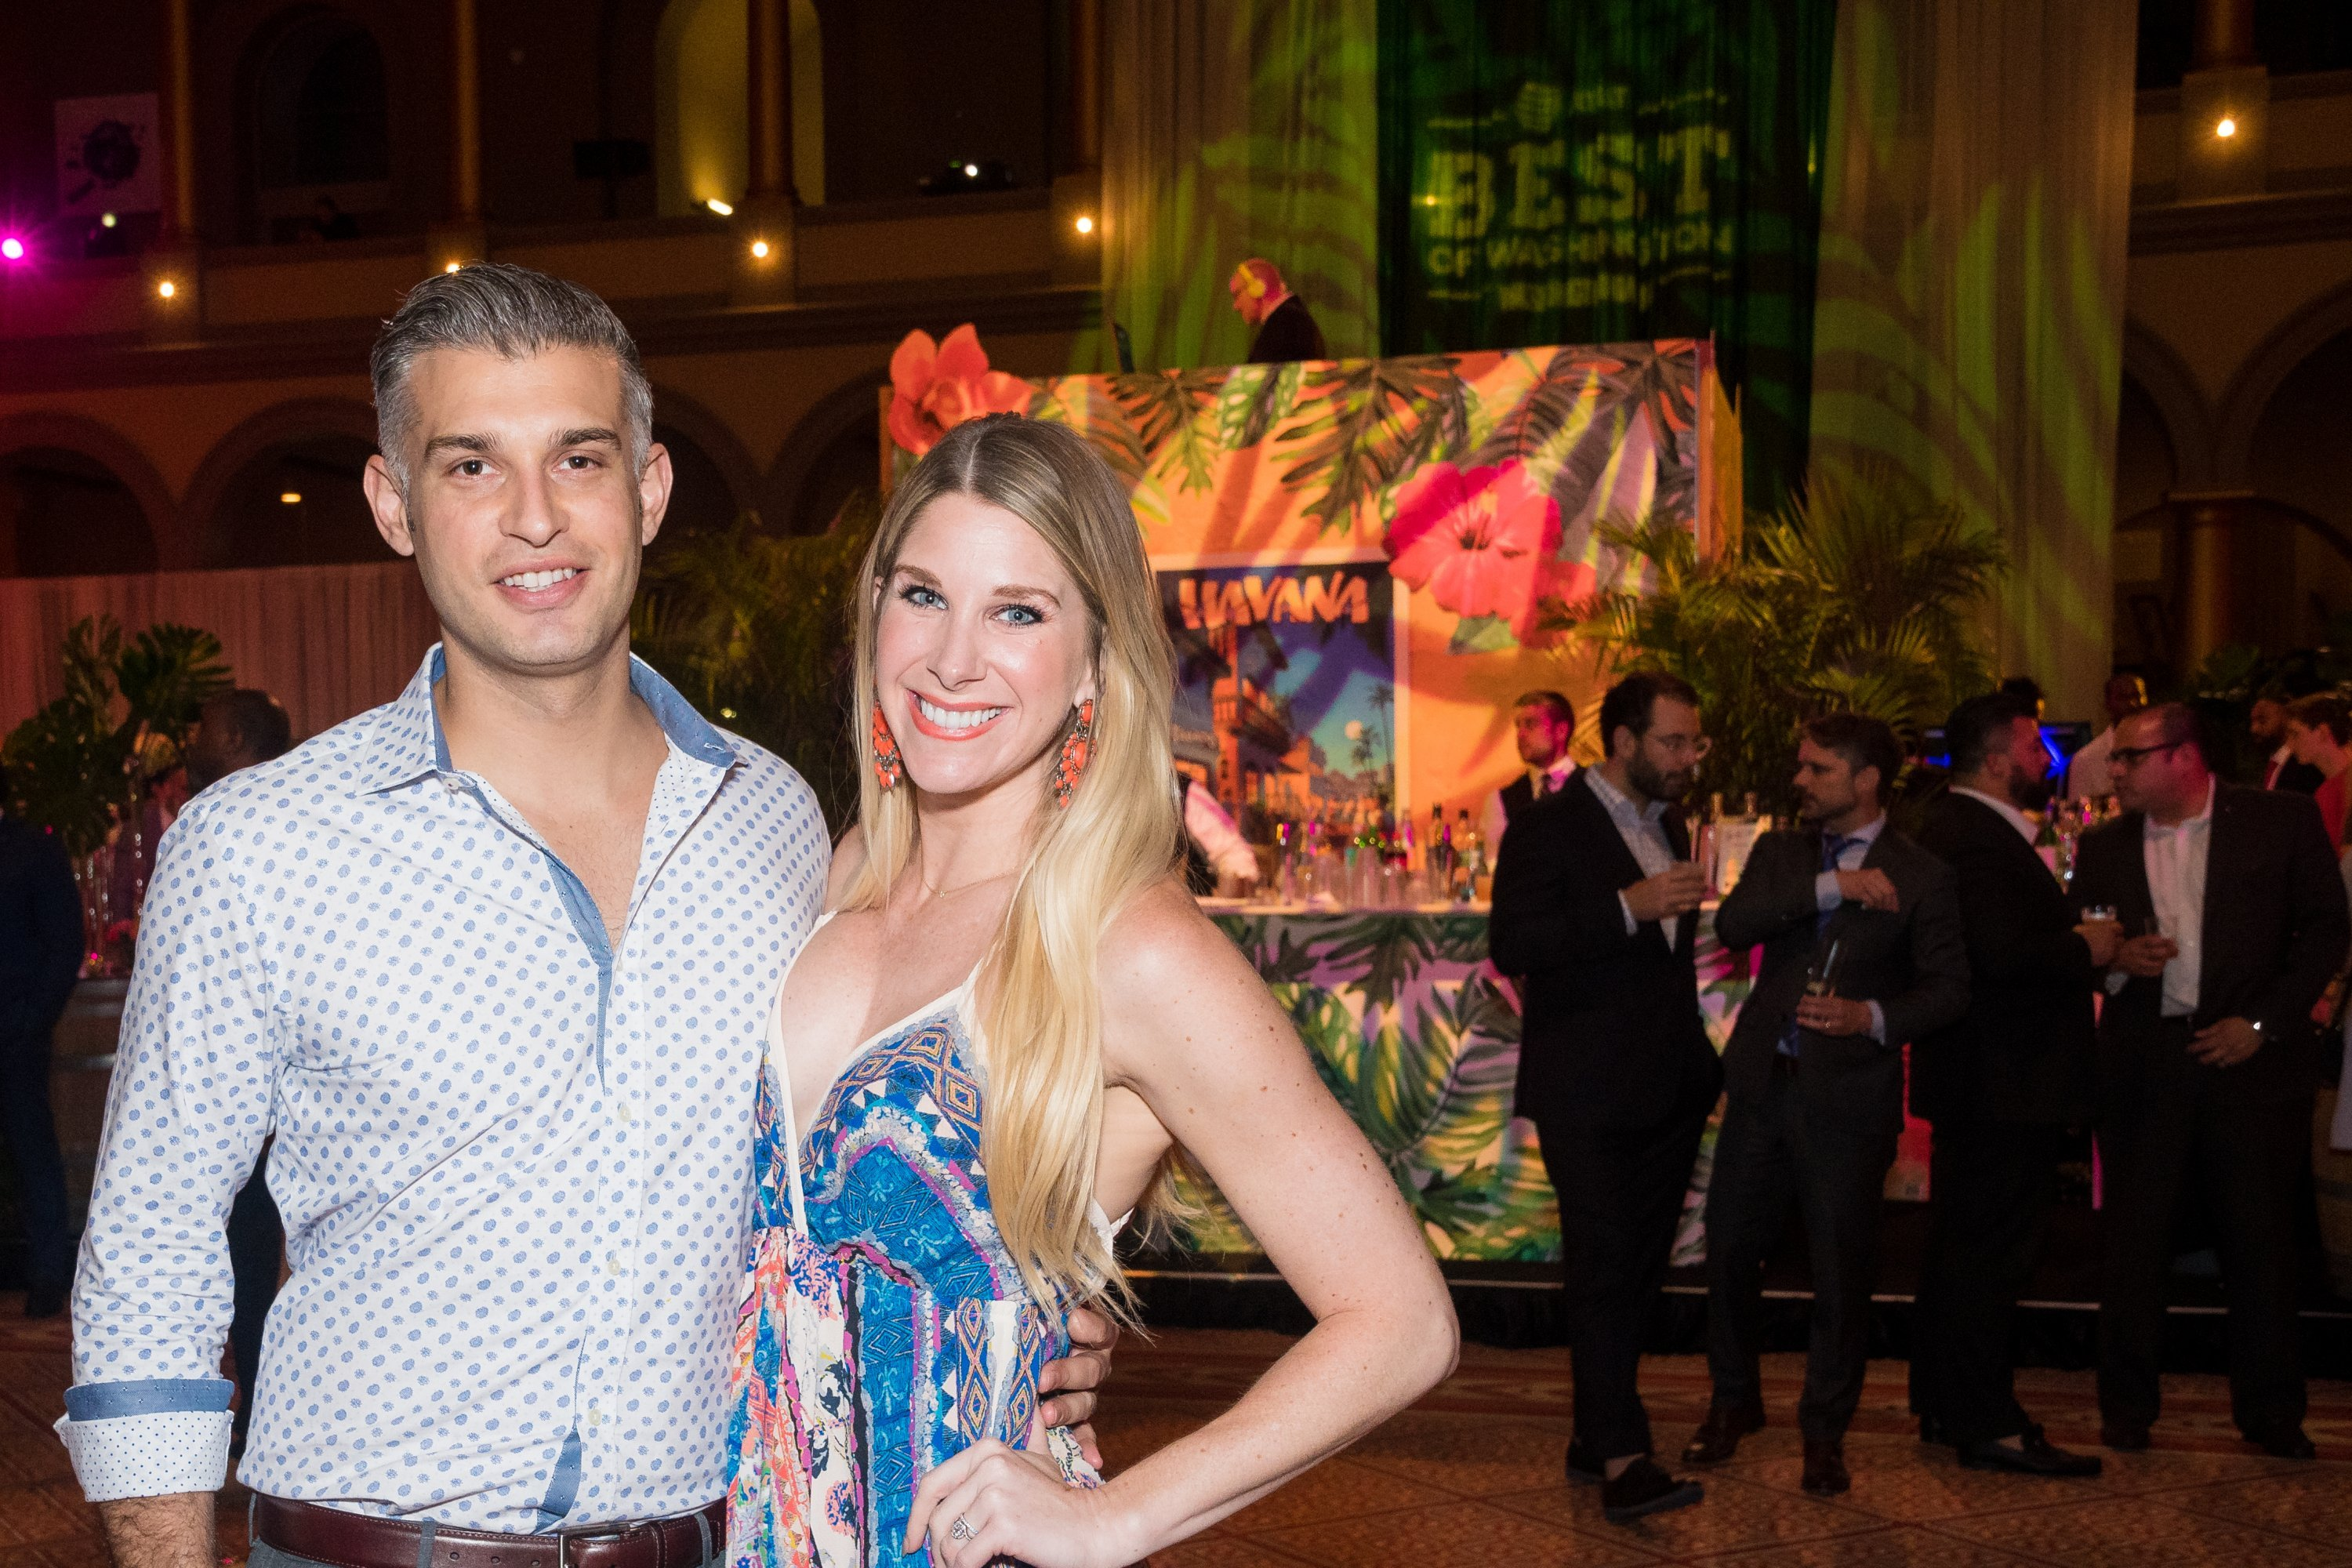 Photos from the 2018 AT&T Best of Washington Party images 2